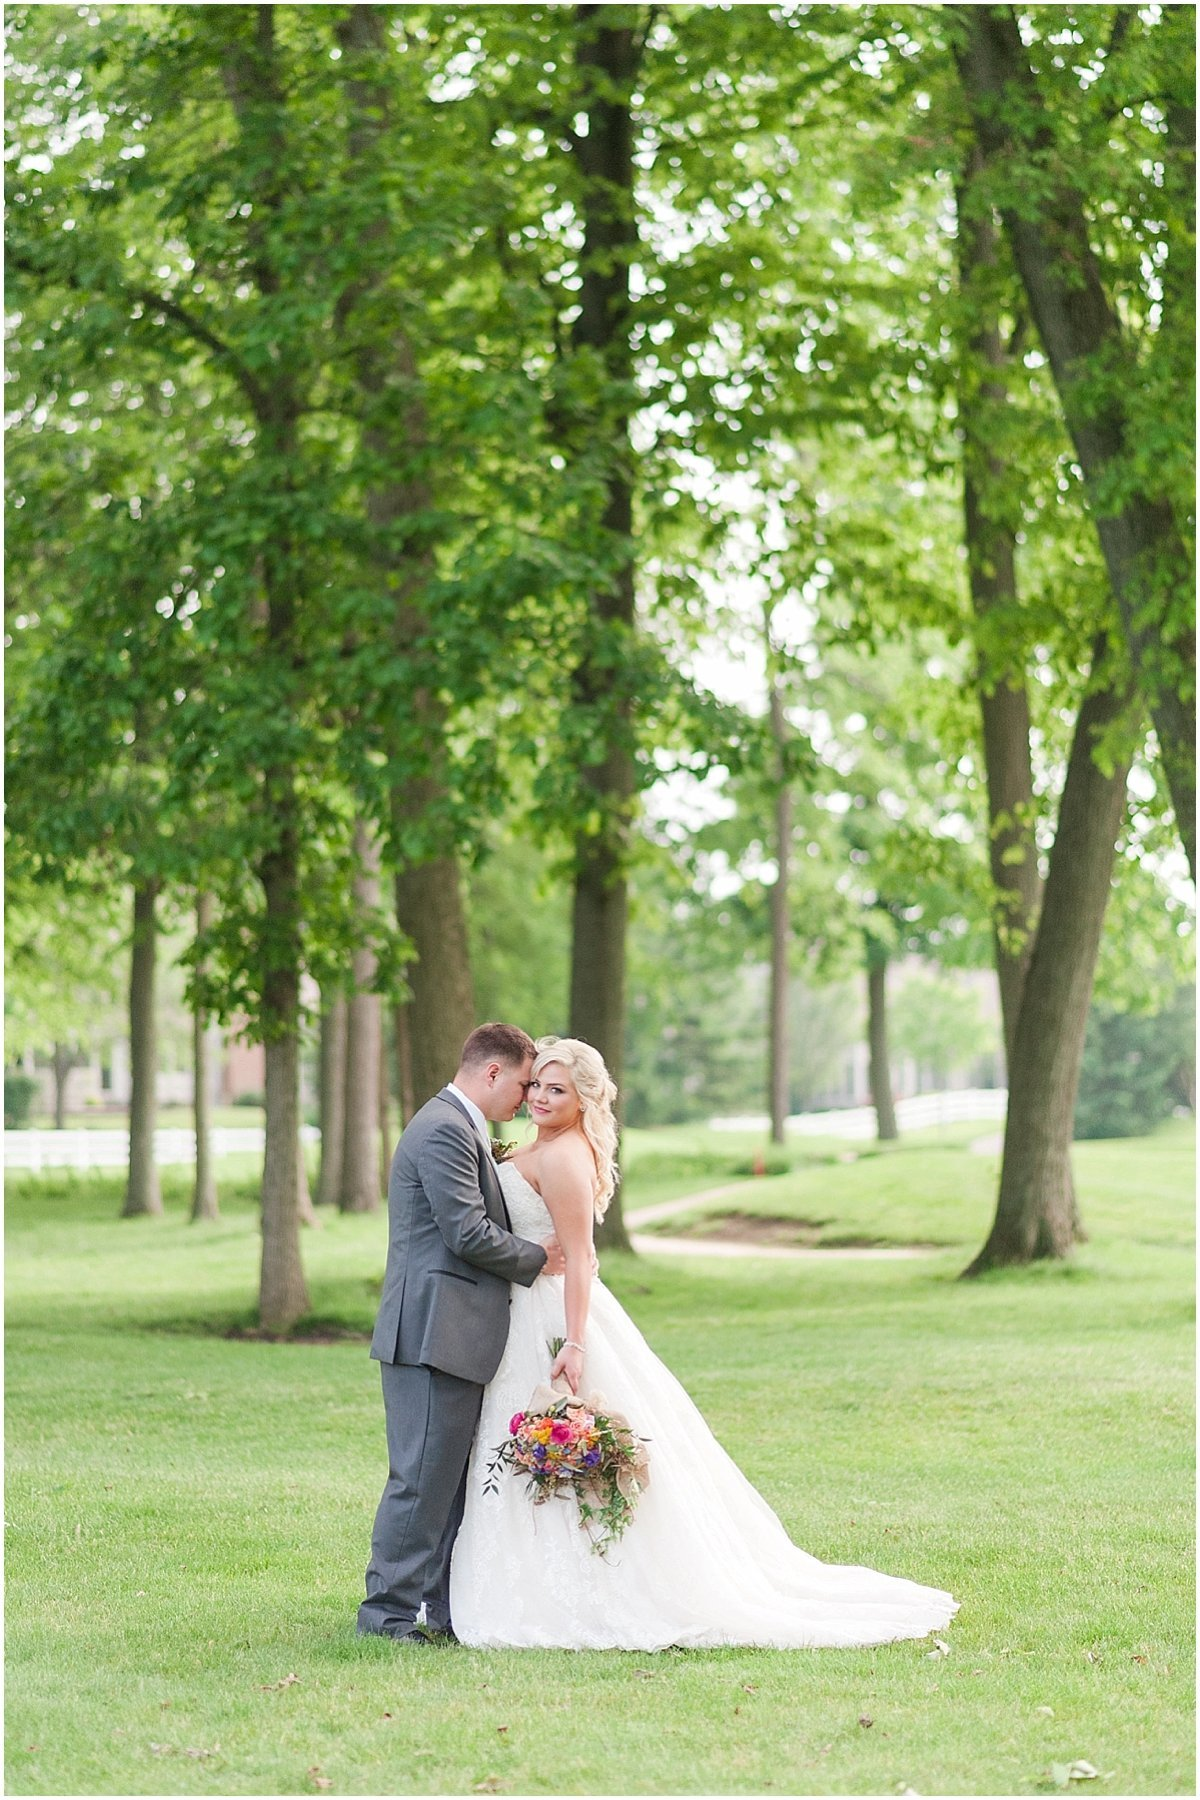 Elegant Heritage Golf Club wedding in Hilliard Ohio Outdoor Wedding Pipers Photography_0072